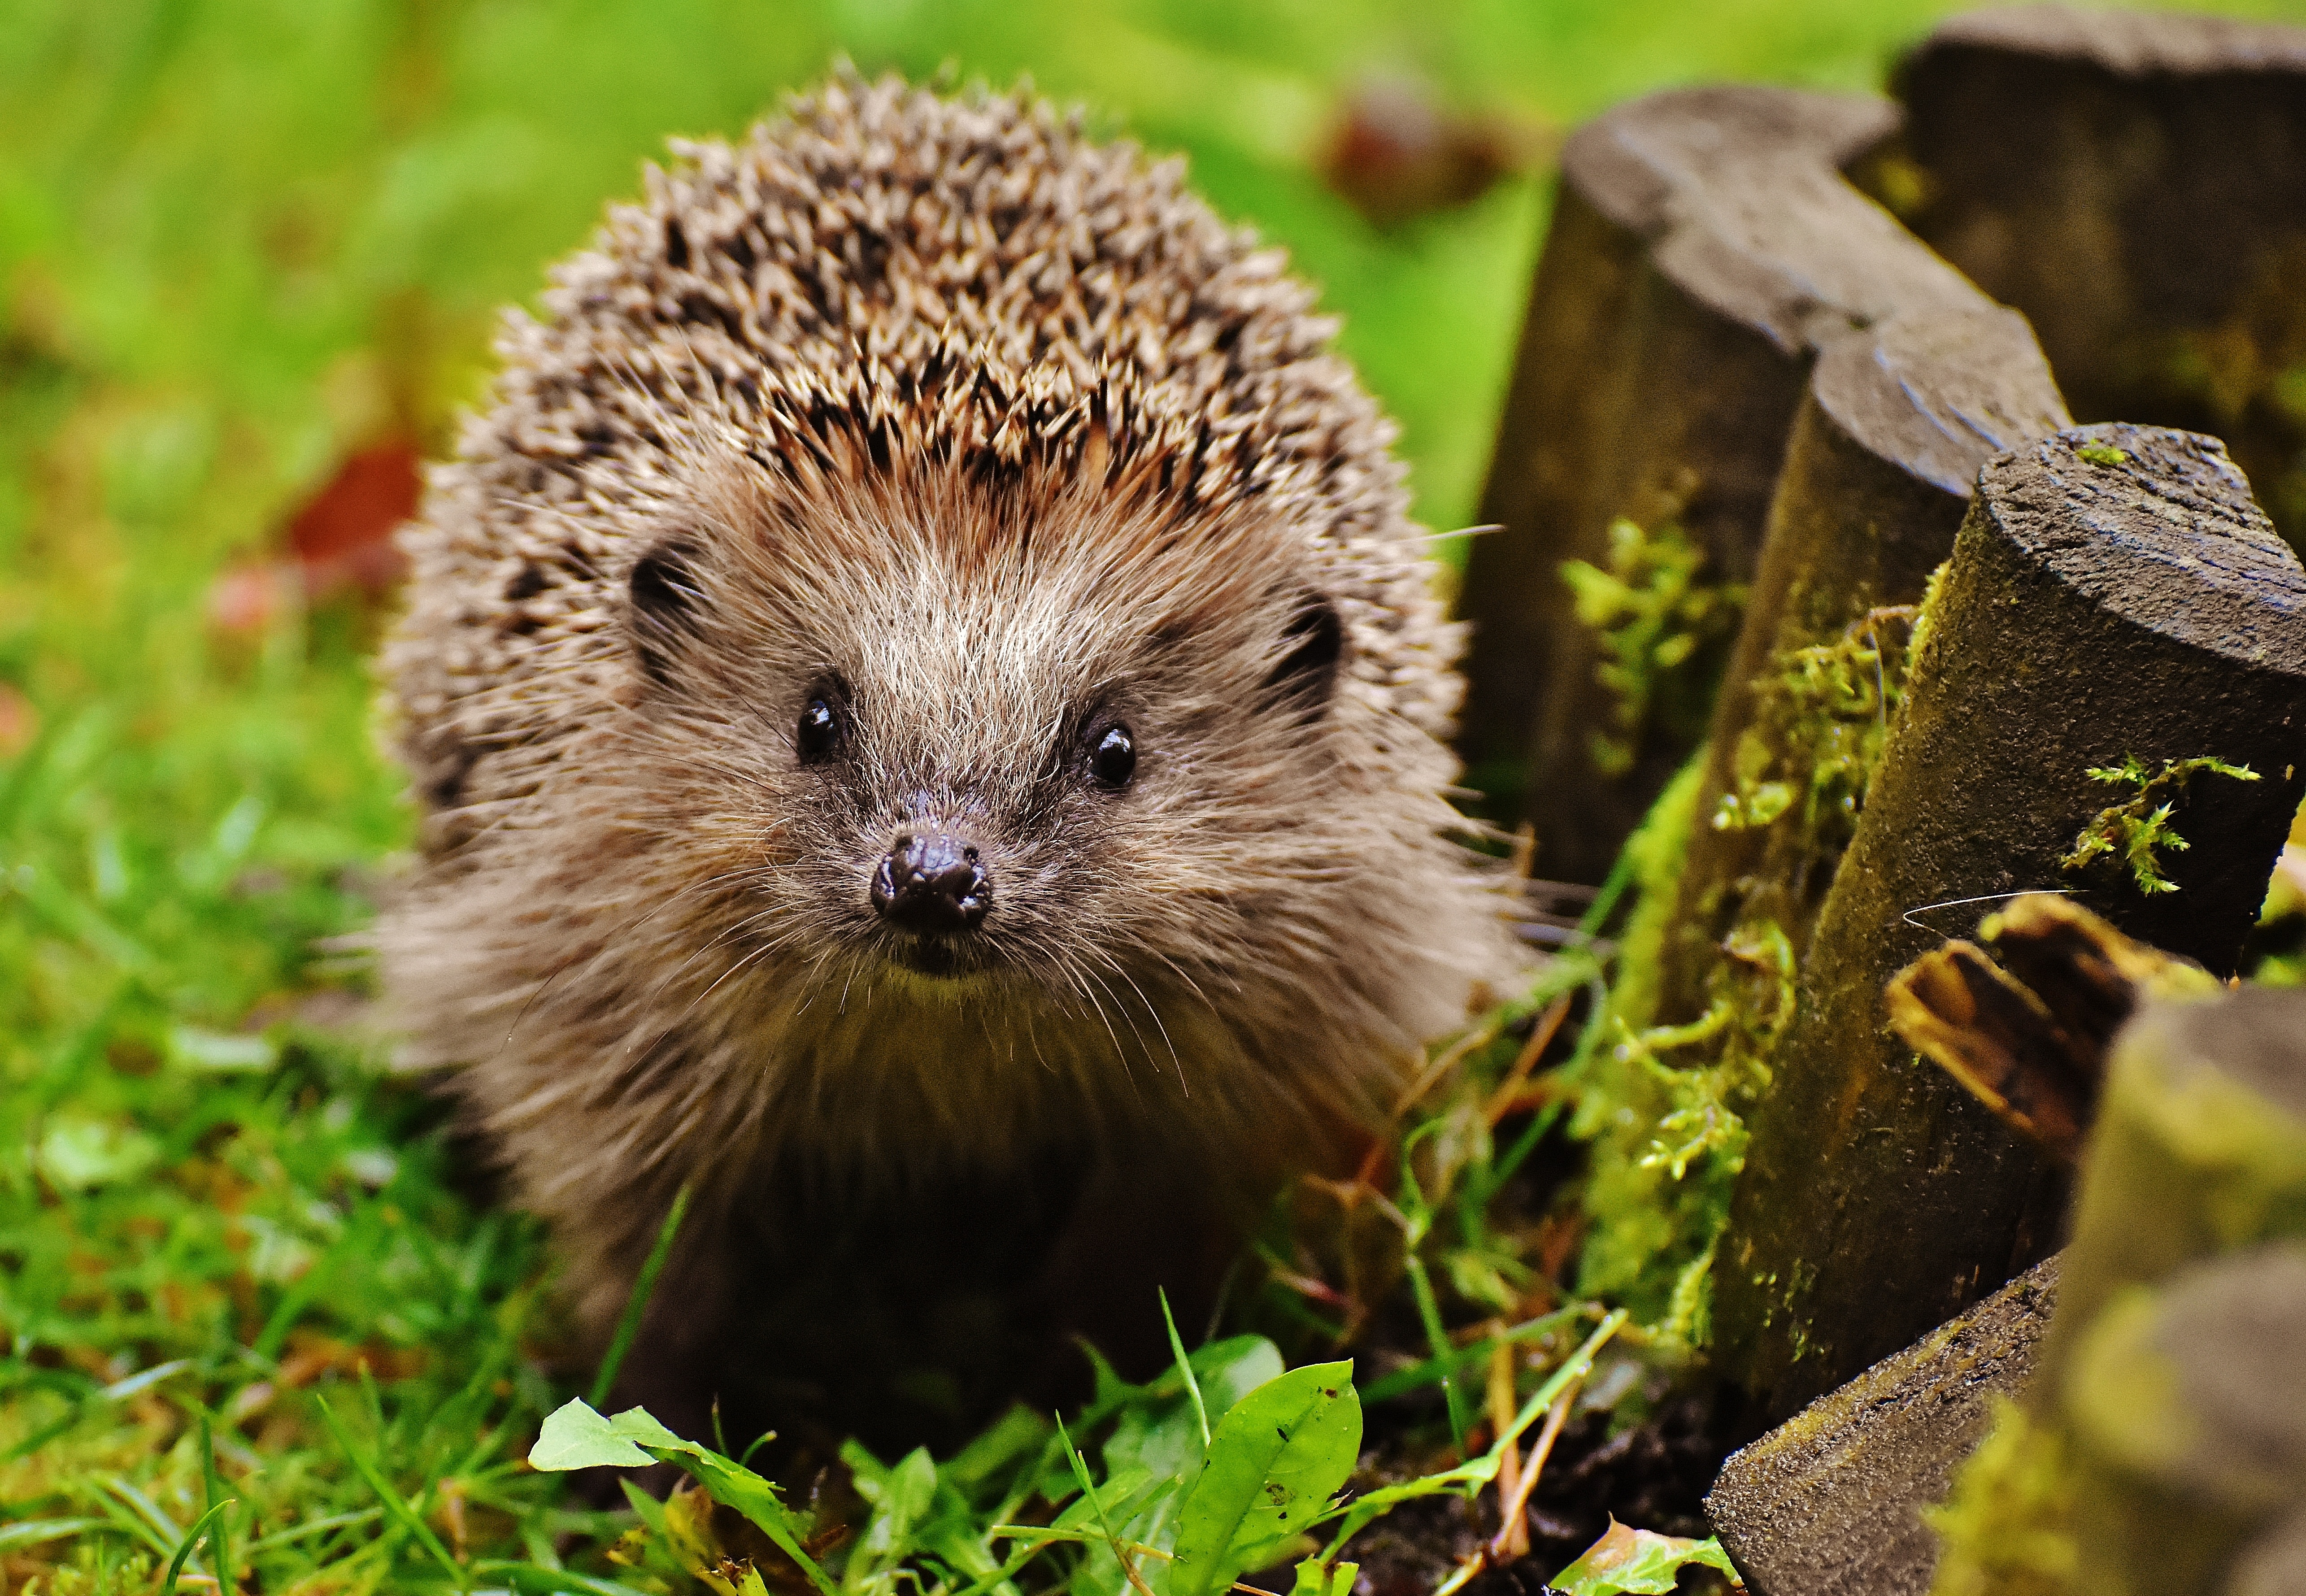 Hedgehog Wallpapers, Pictures, Images